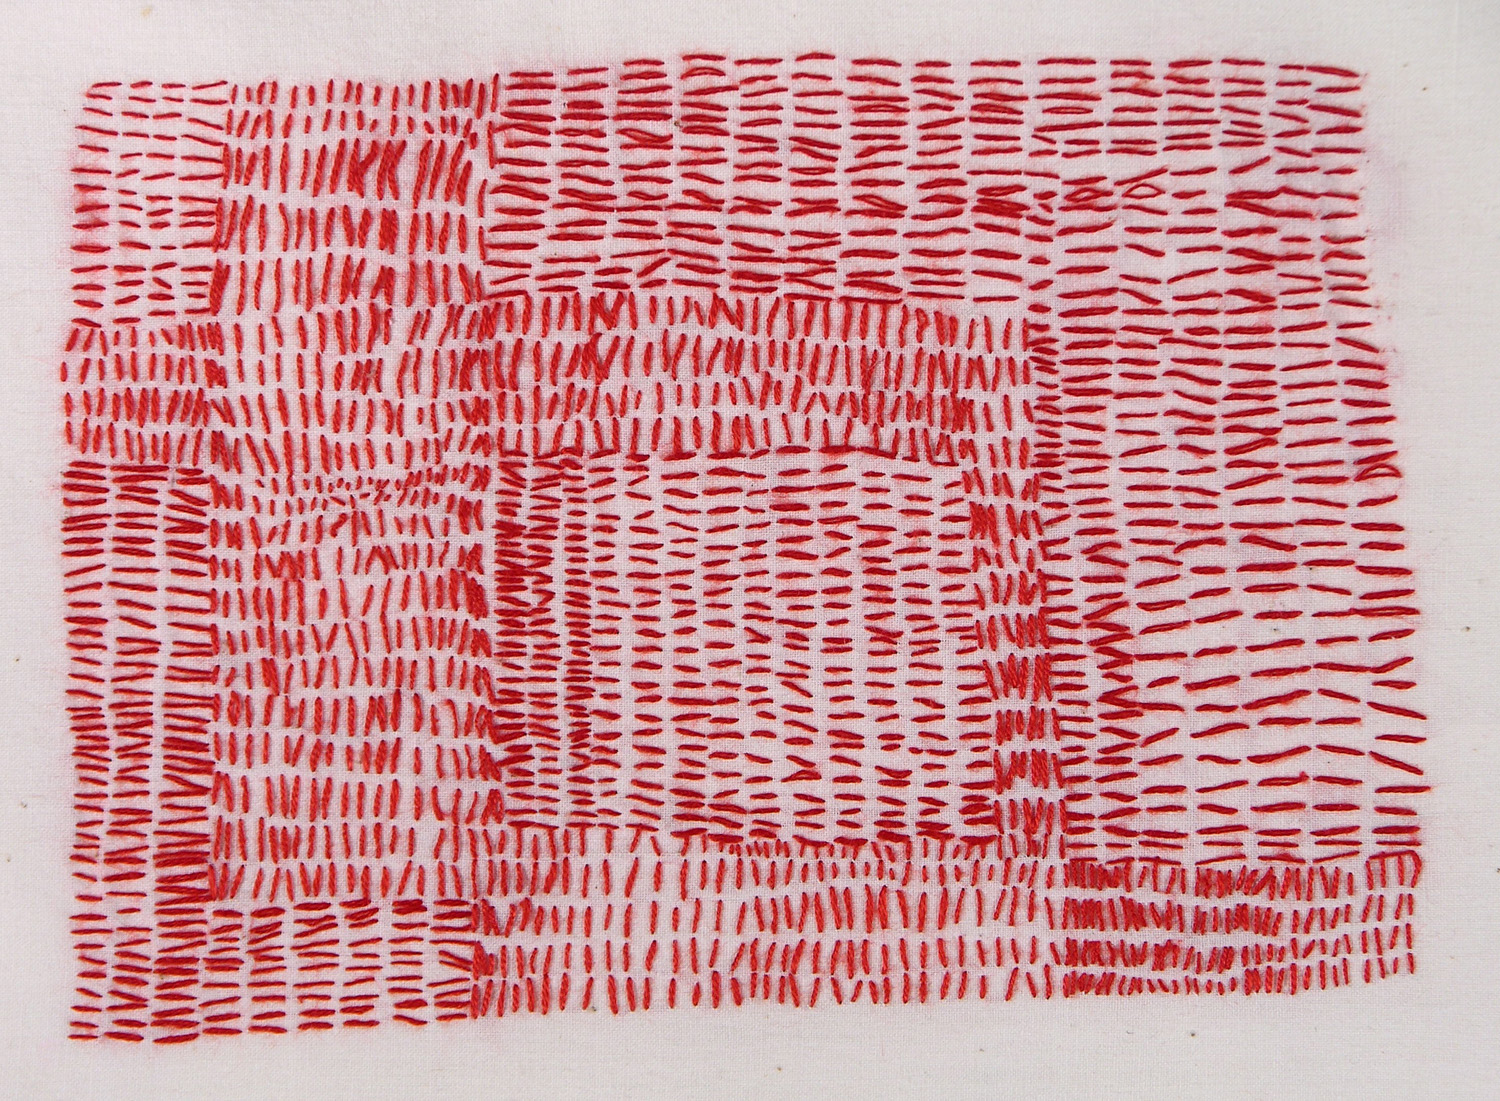 STITCHED RED MAP, 2009